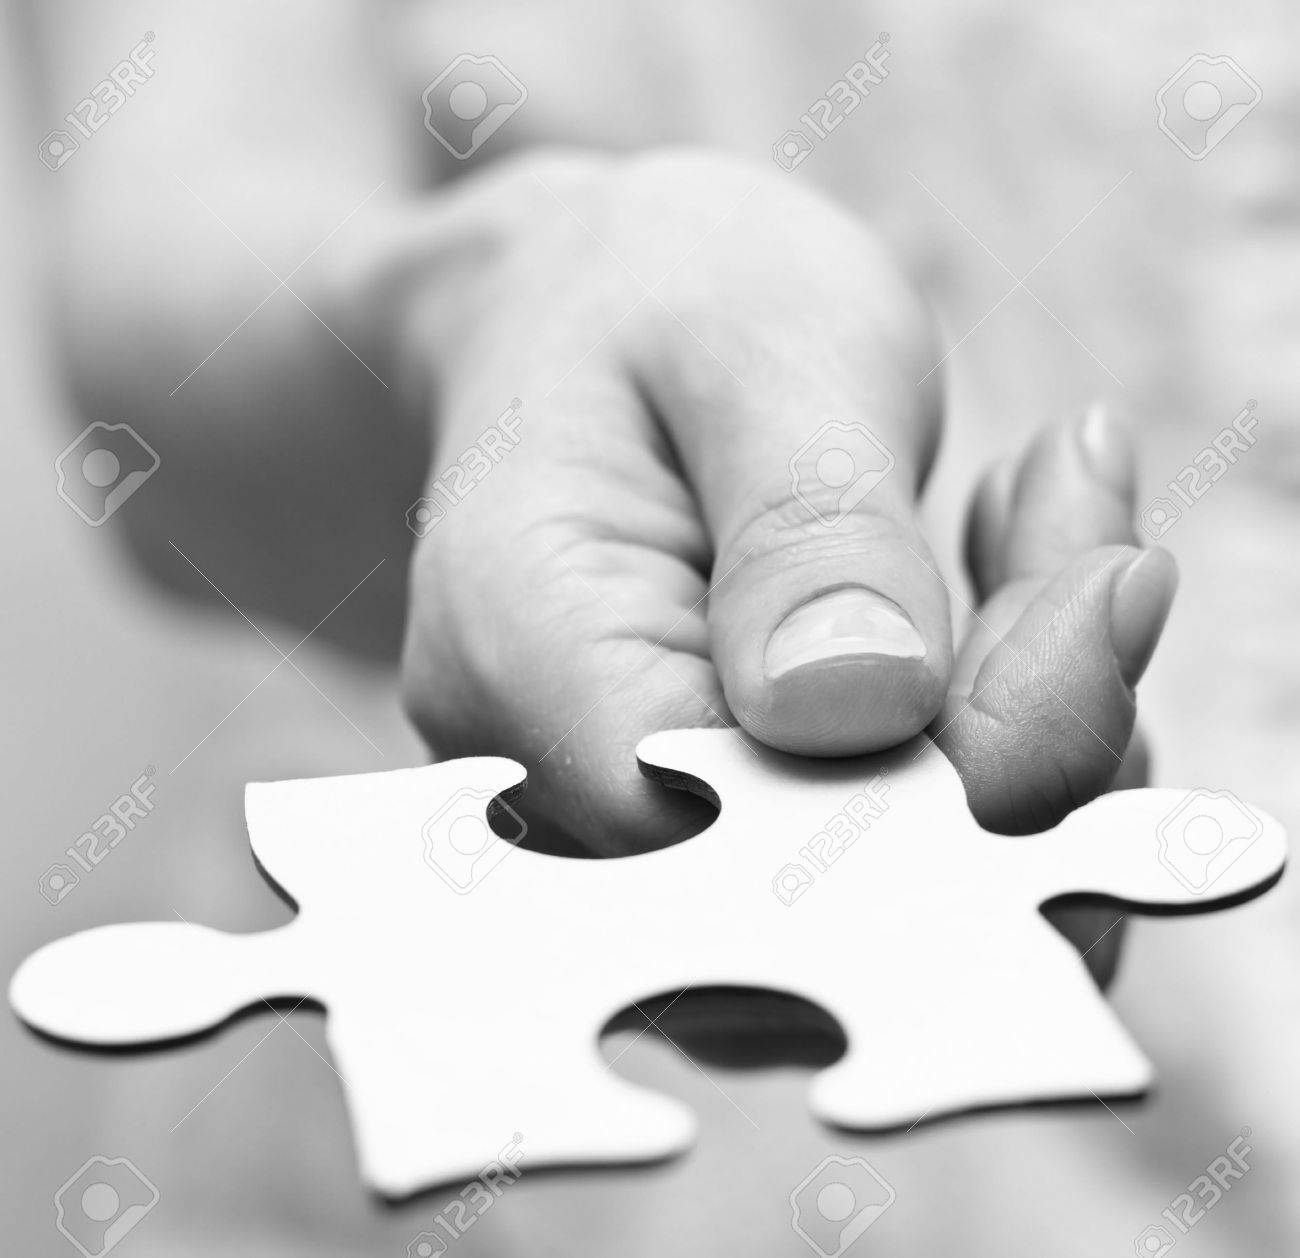 Human hands holding the missing piece - 12893186